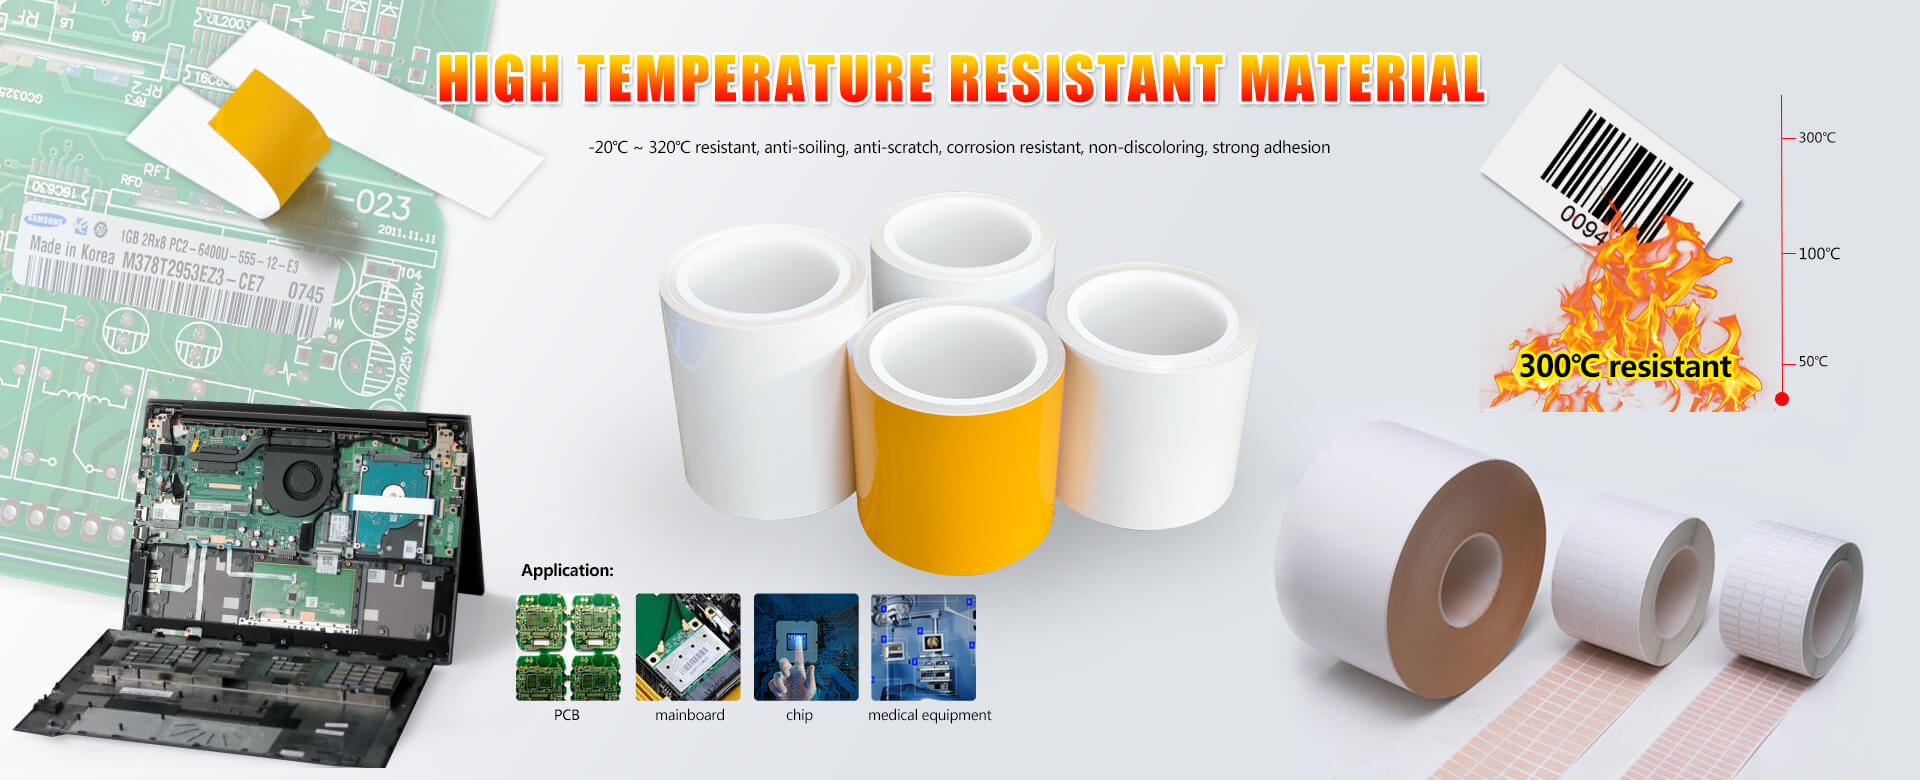 High Temperature Heat-resistance Label Materia